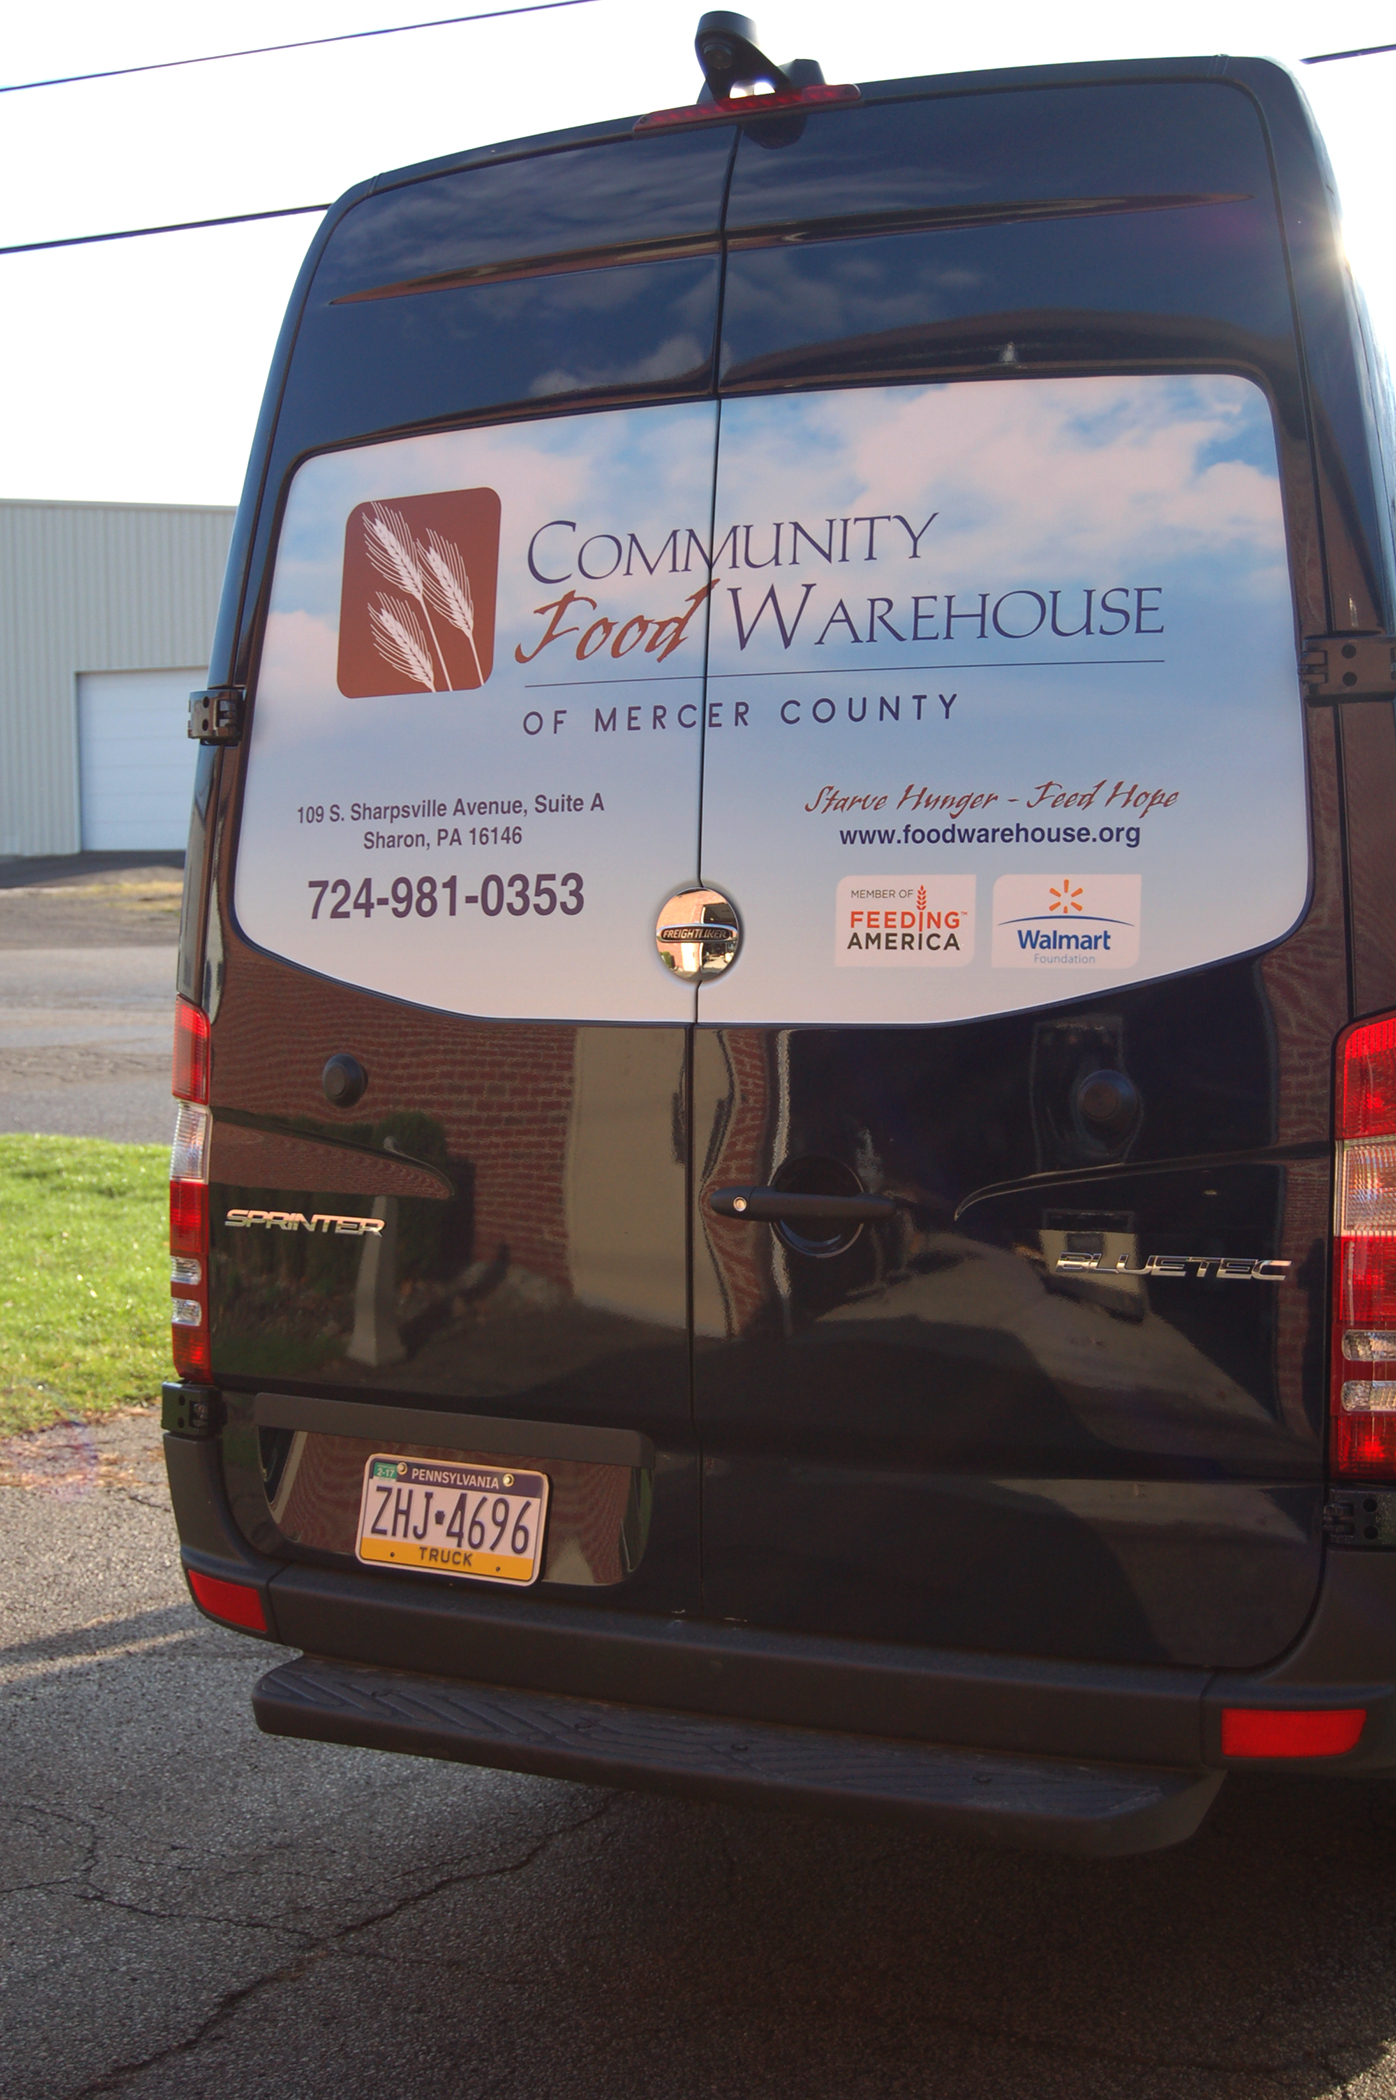 Client: Community Food Warehouse of Mercer County